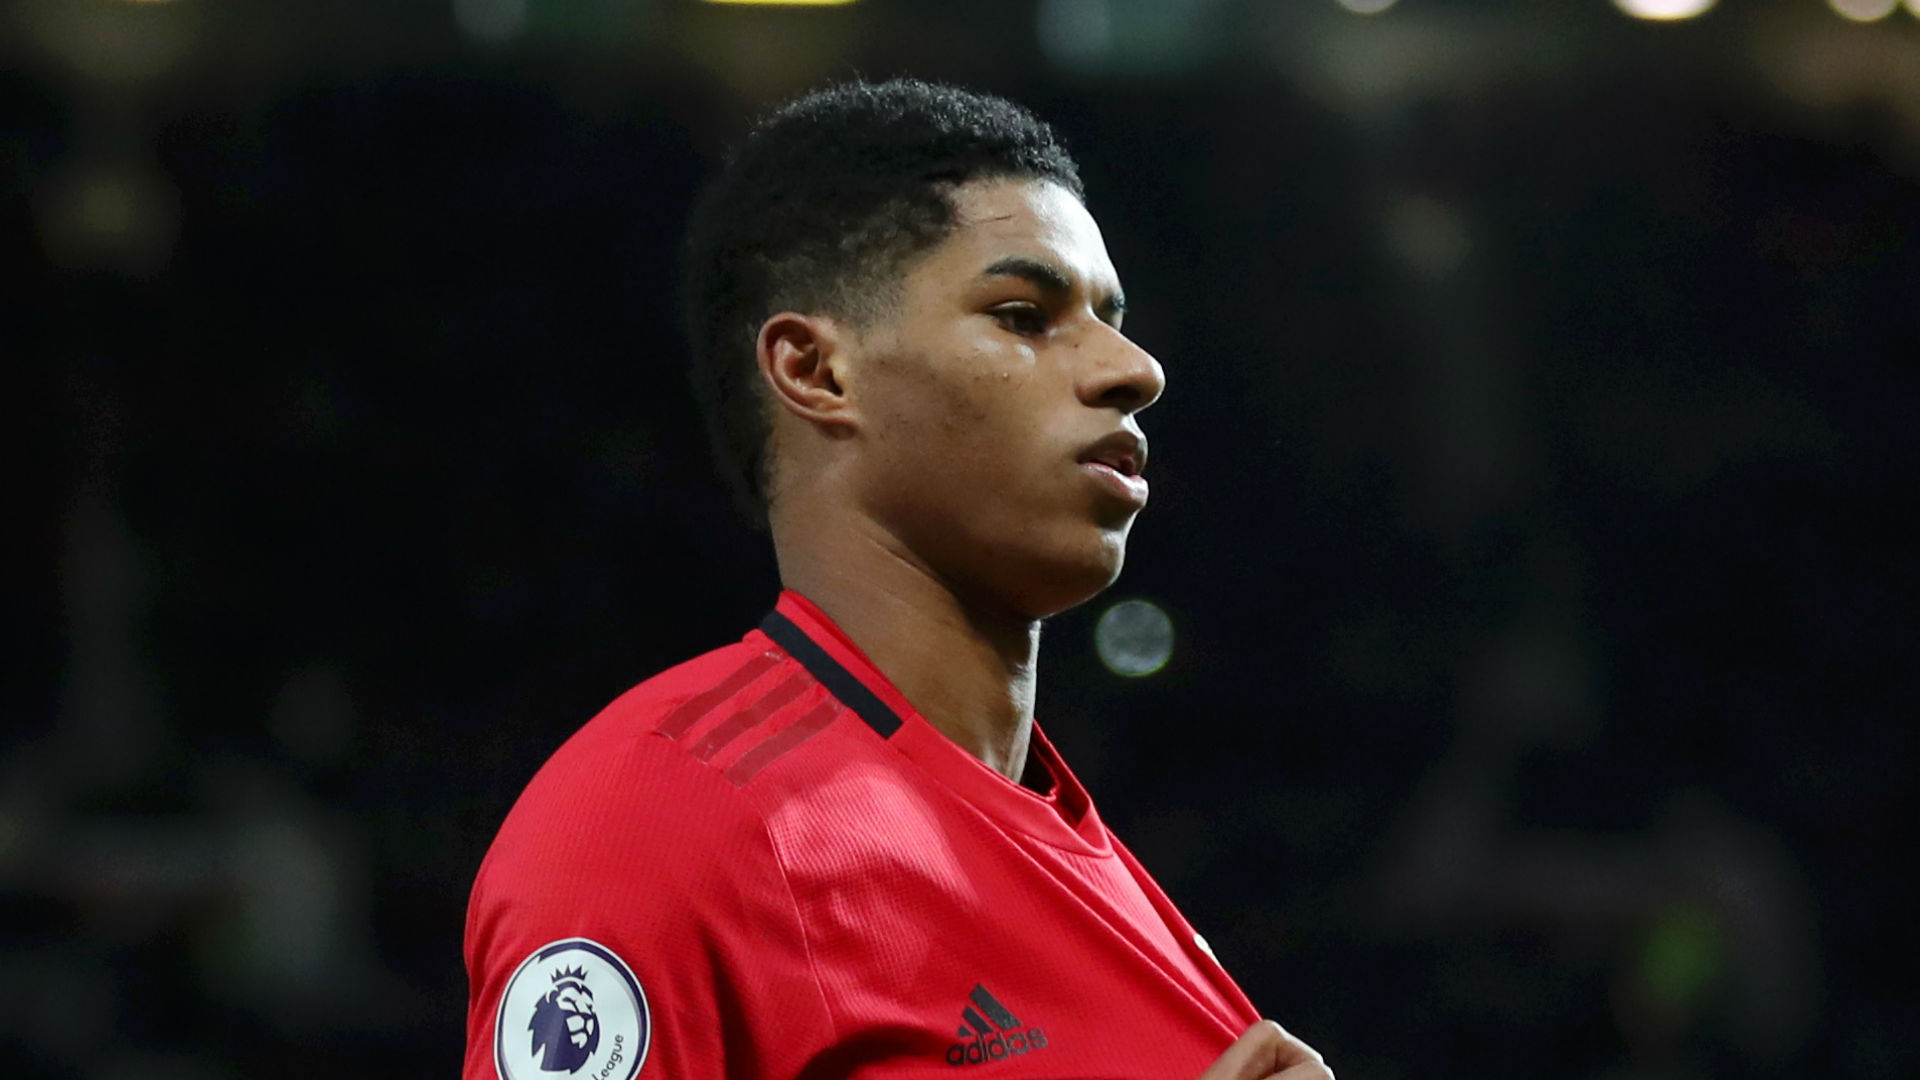 Rashford joins Sancho in speaking out after George Floyd's death